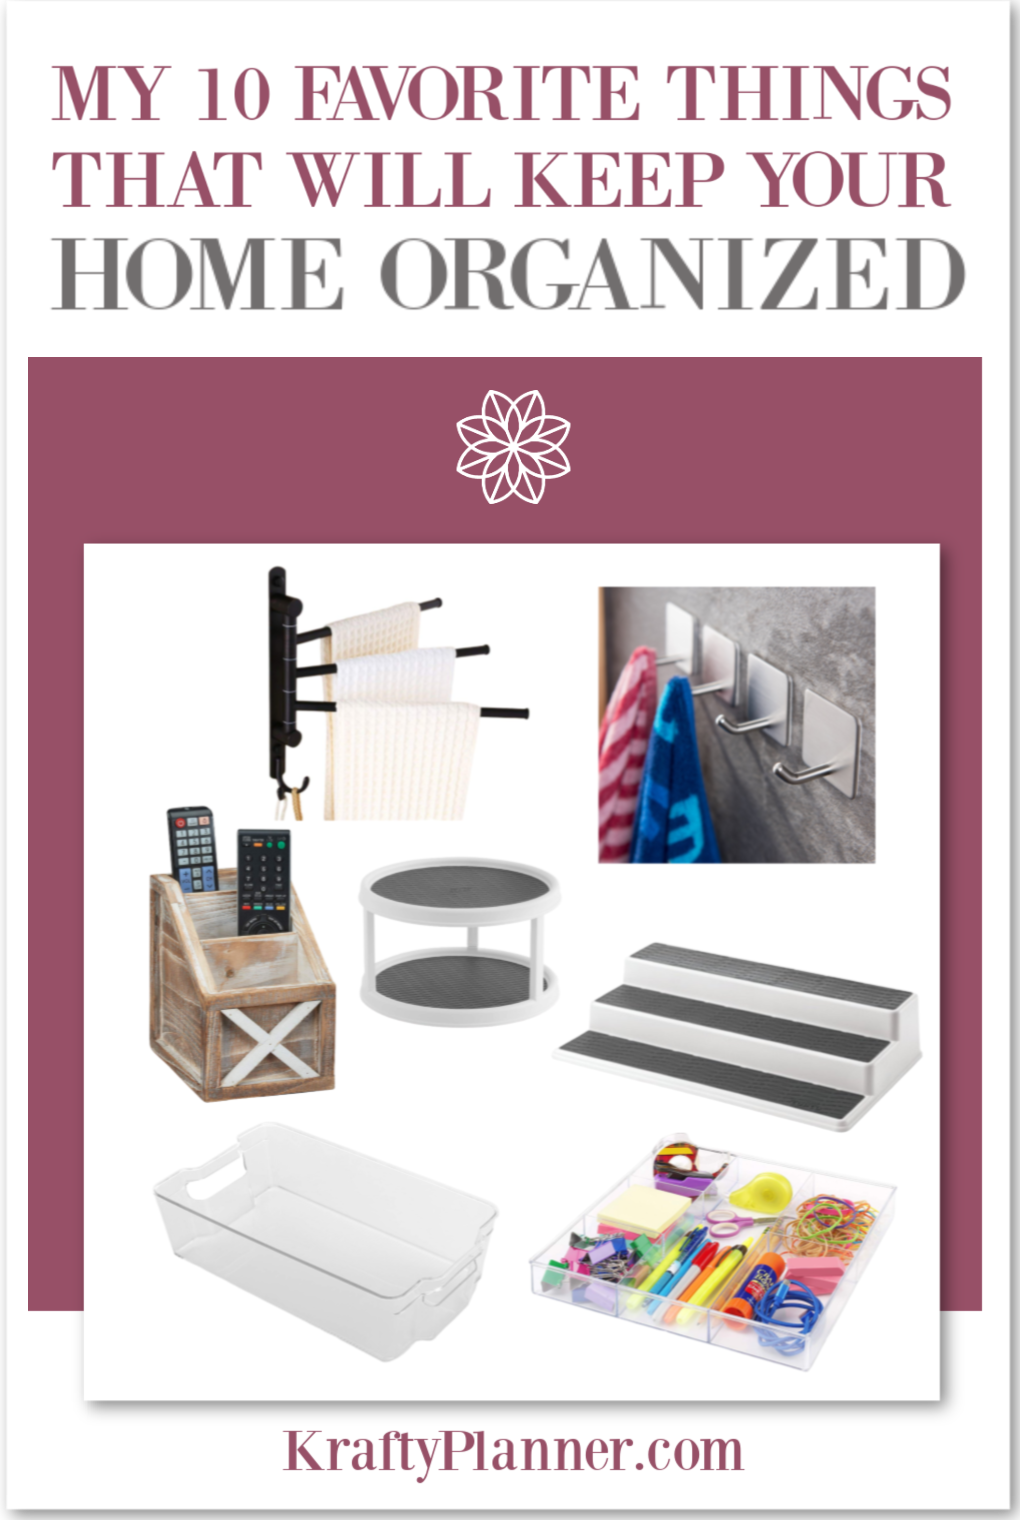 my 10 favorite things that will Keep Your Home Organized PIN 3.png